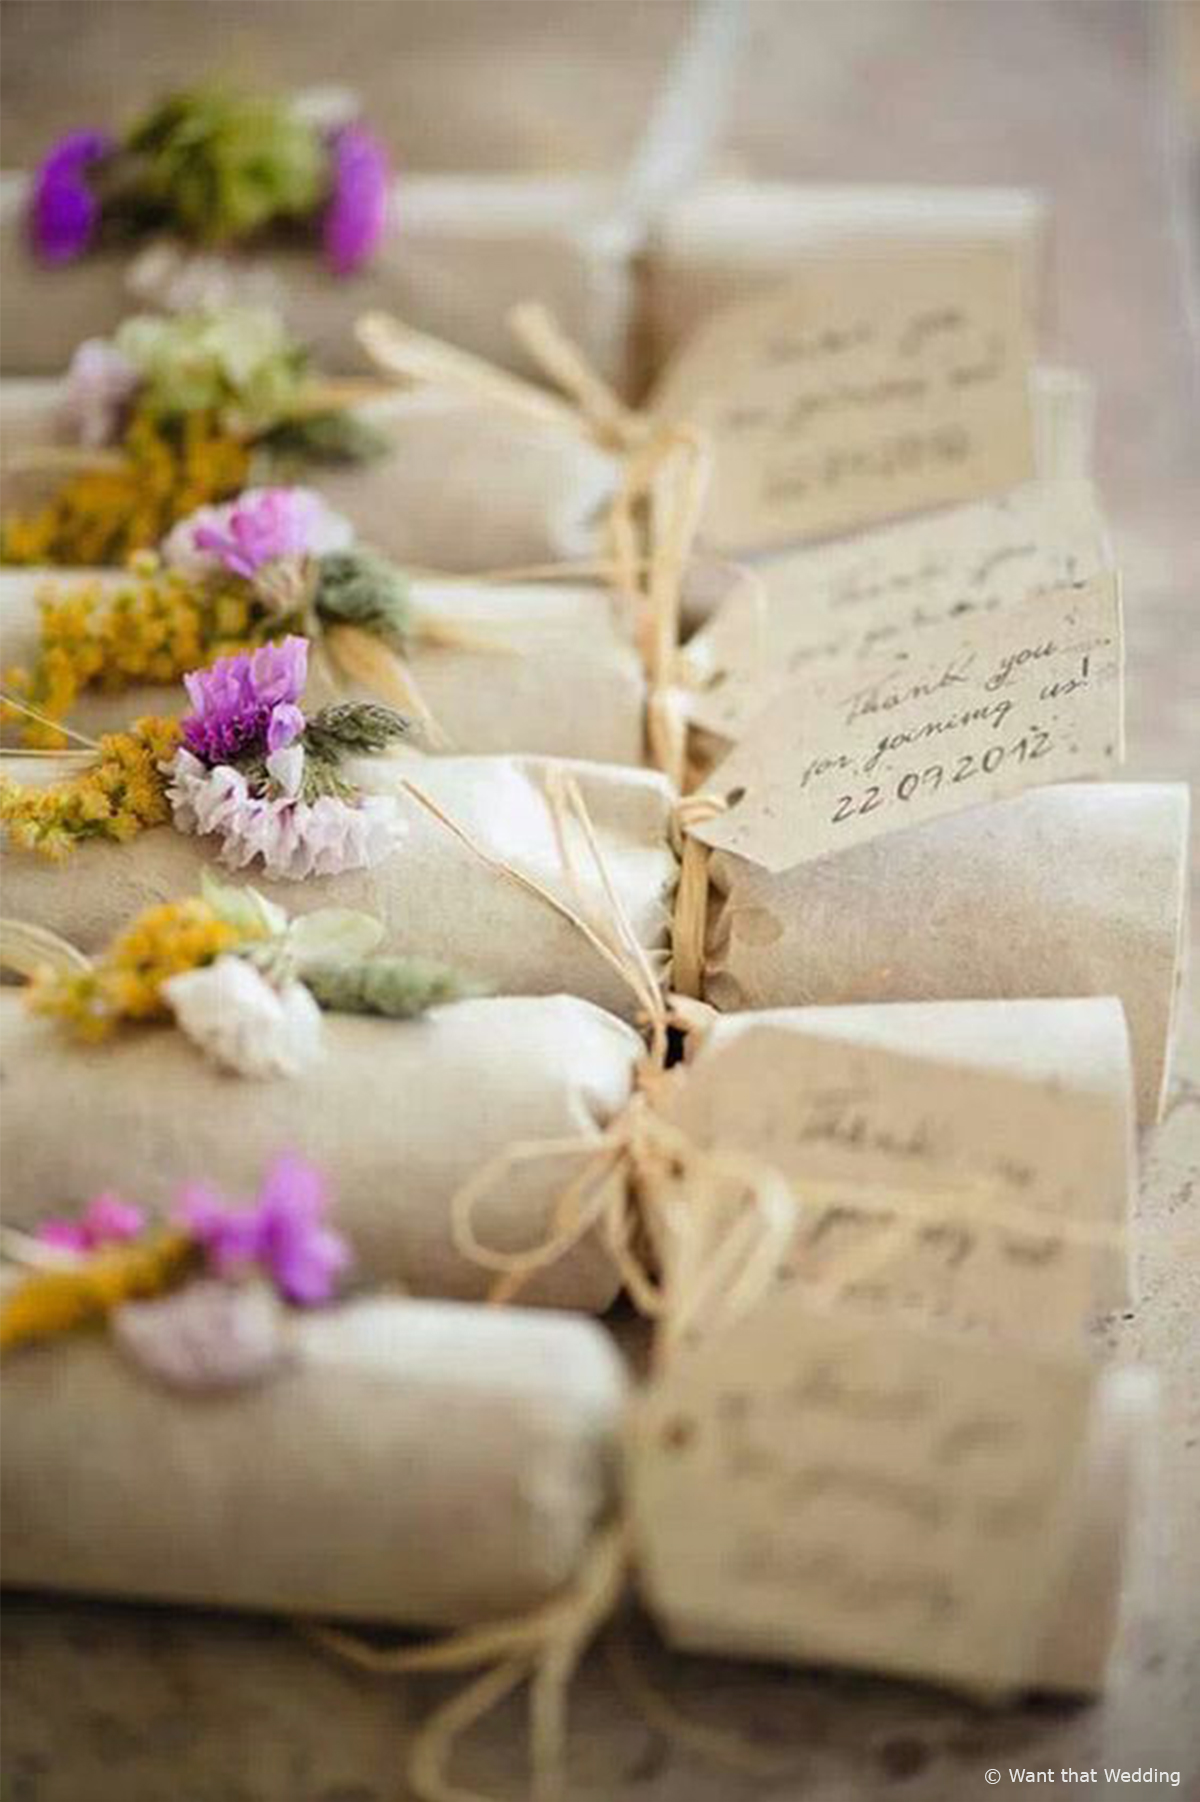 10 of our Favourite Wedding Favours 2016 - Crackers